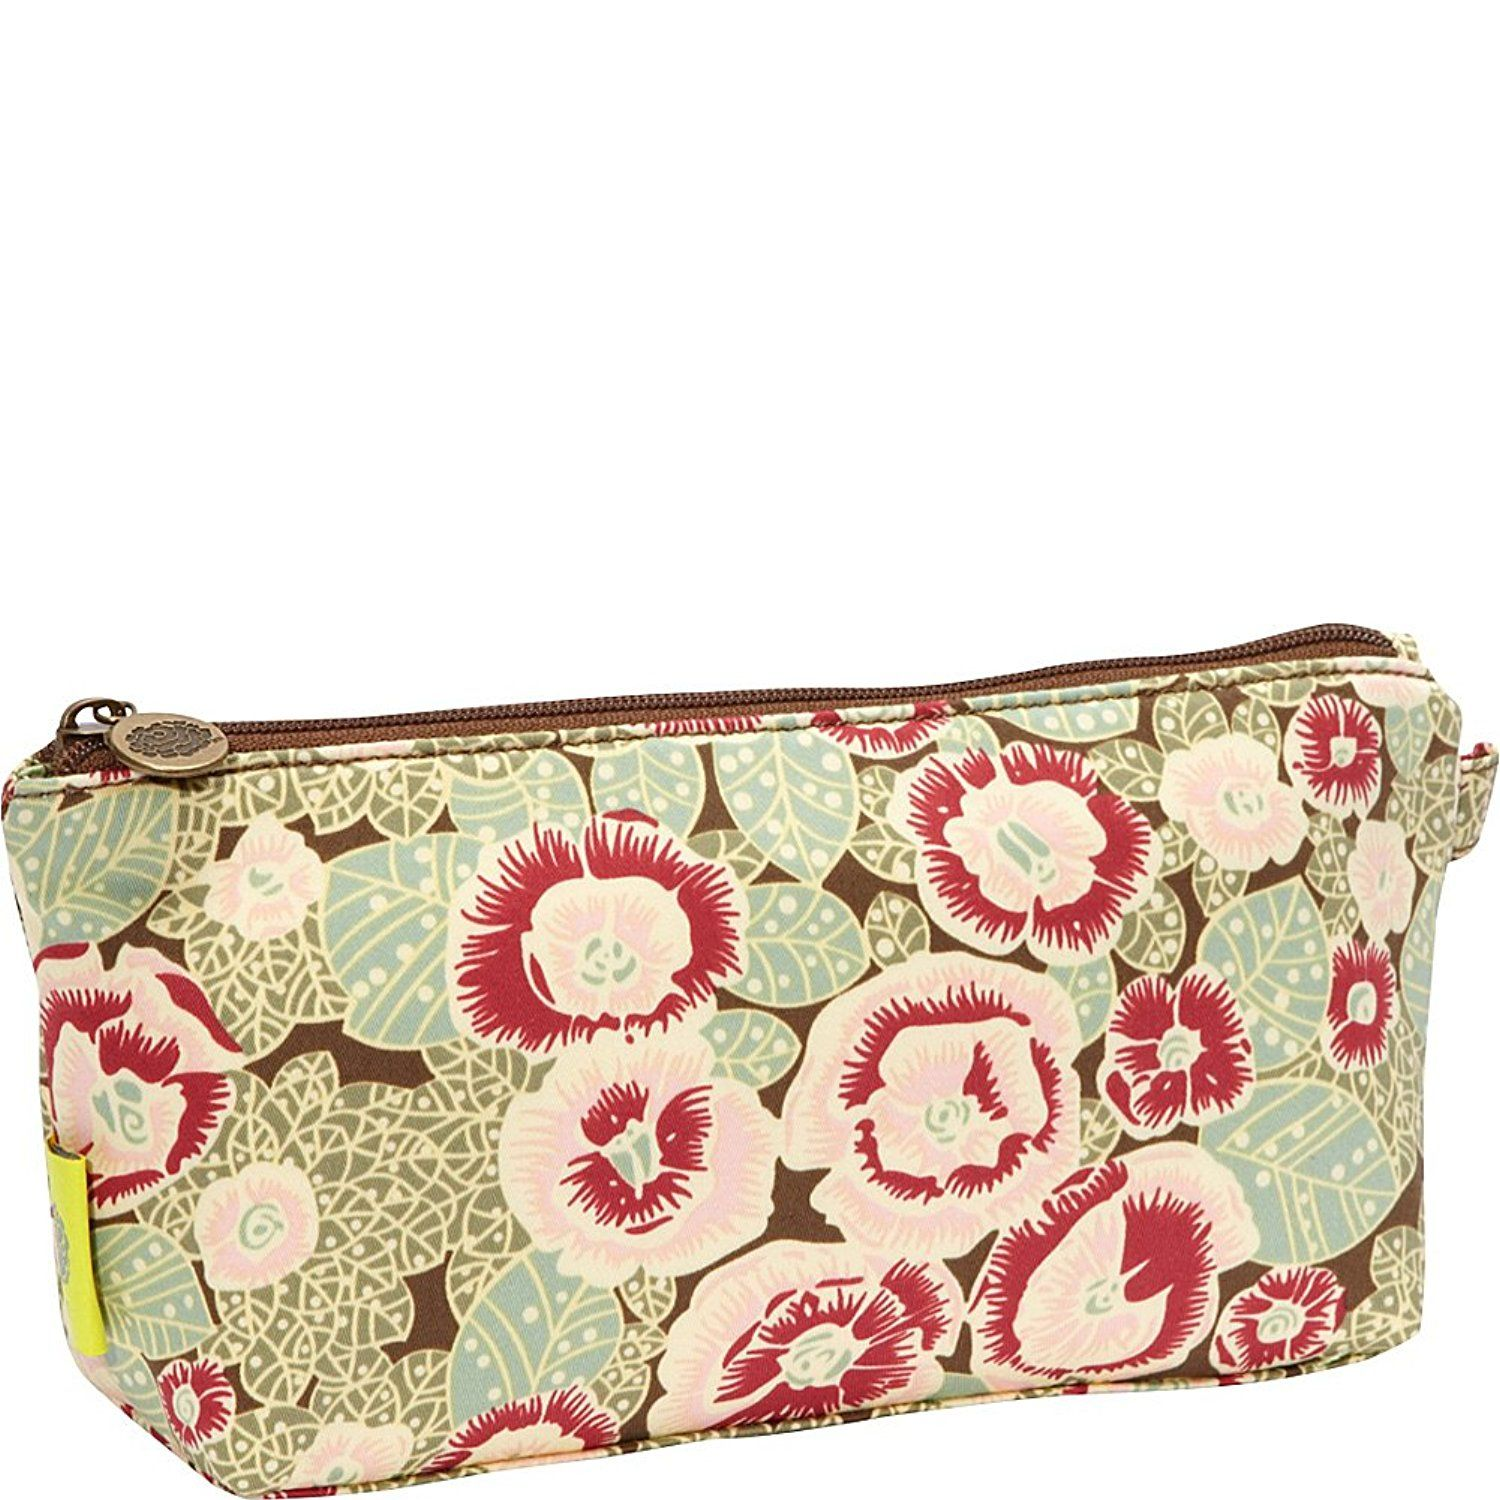 Amy Butler Carried Away Small Accessory Bag >>> Startling review available here  : Travel cosmetic bag